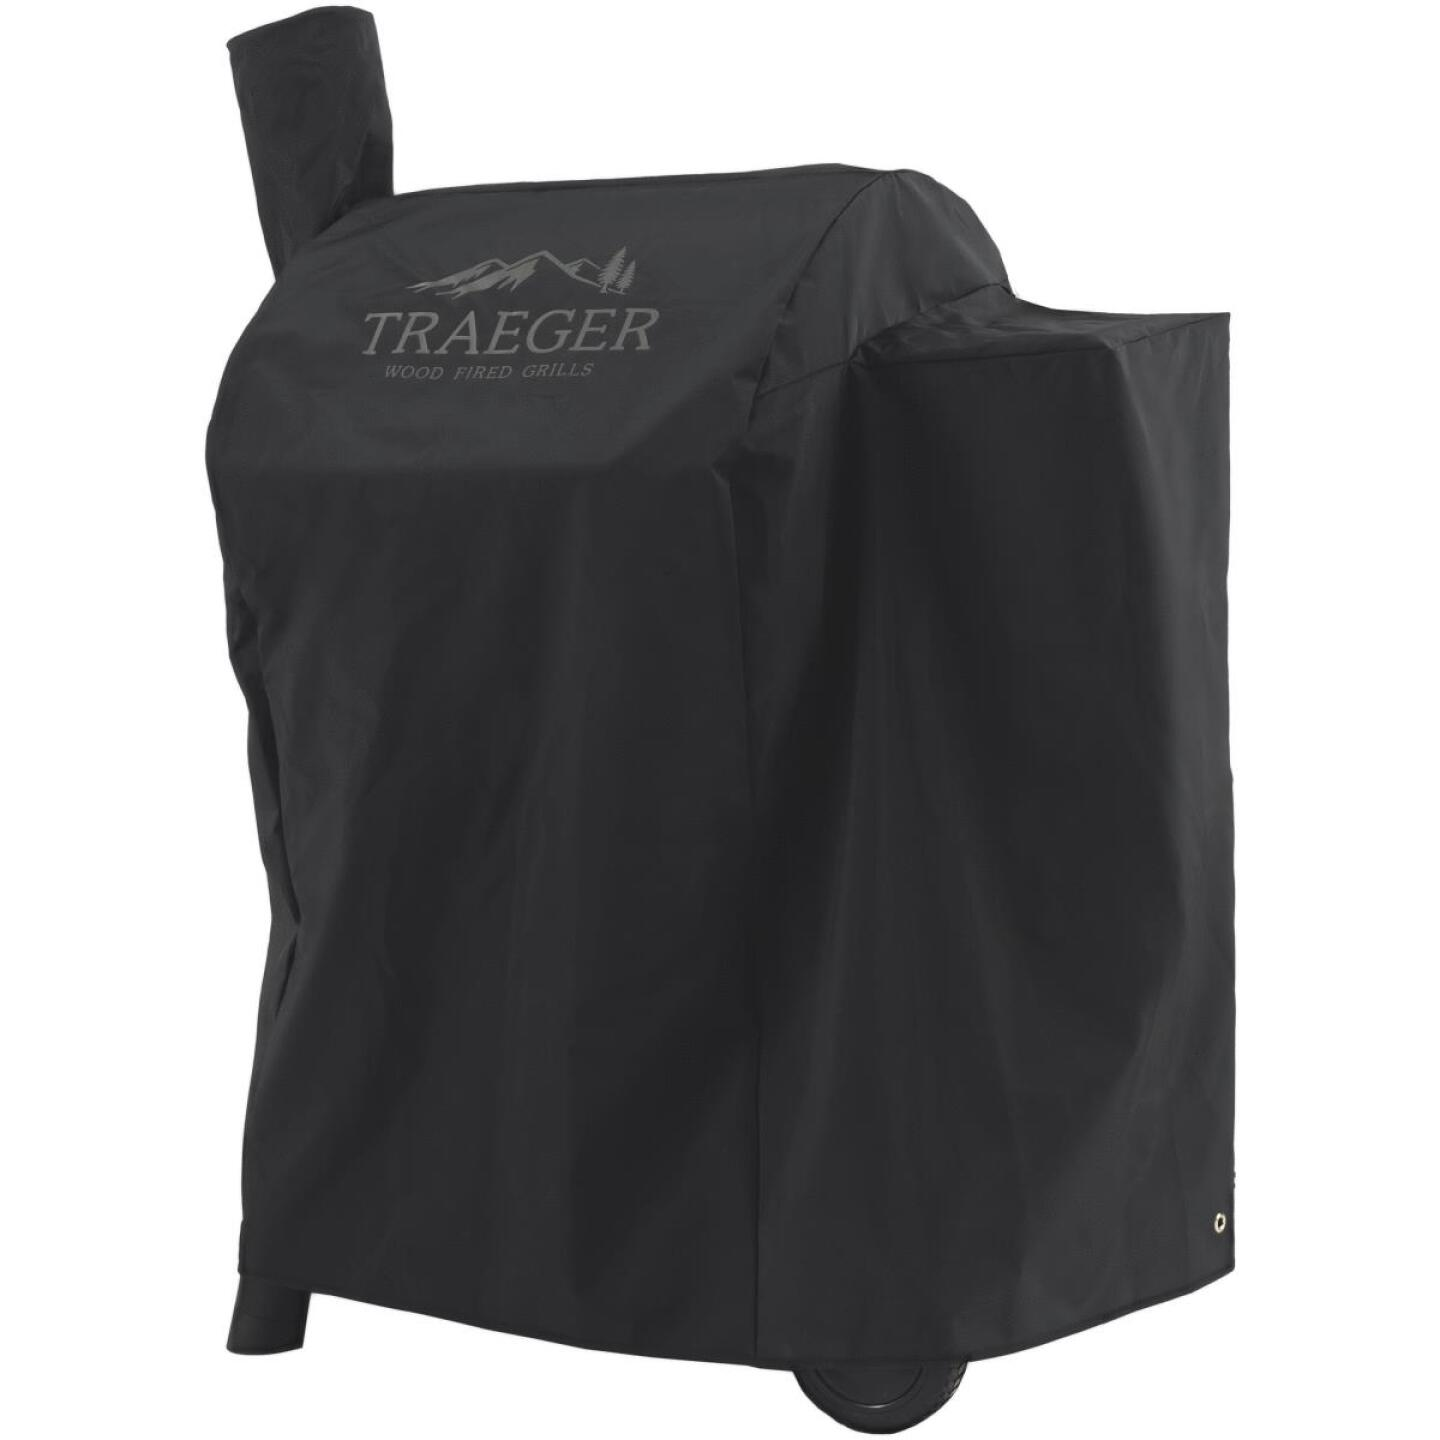 Traeger Pro 575 35 In. Black Polyester Grill Cover Image 1